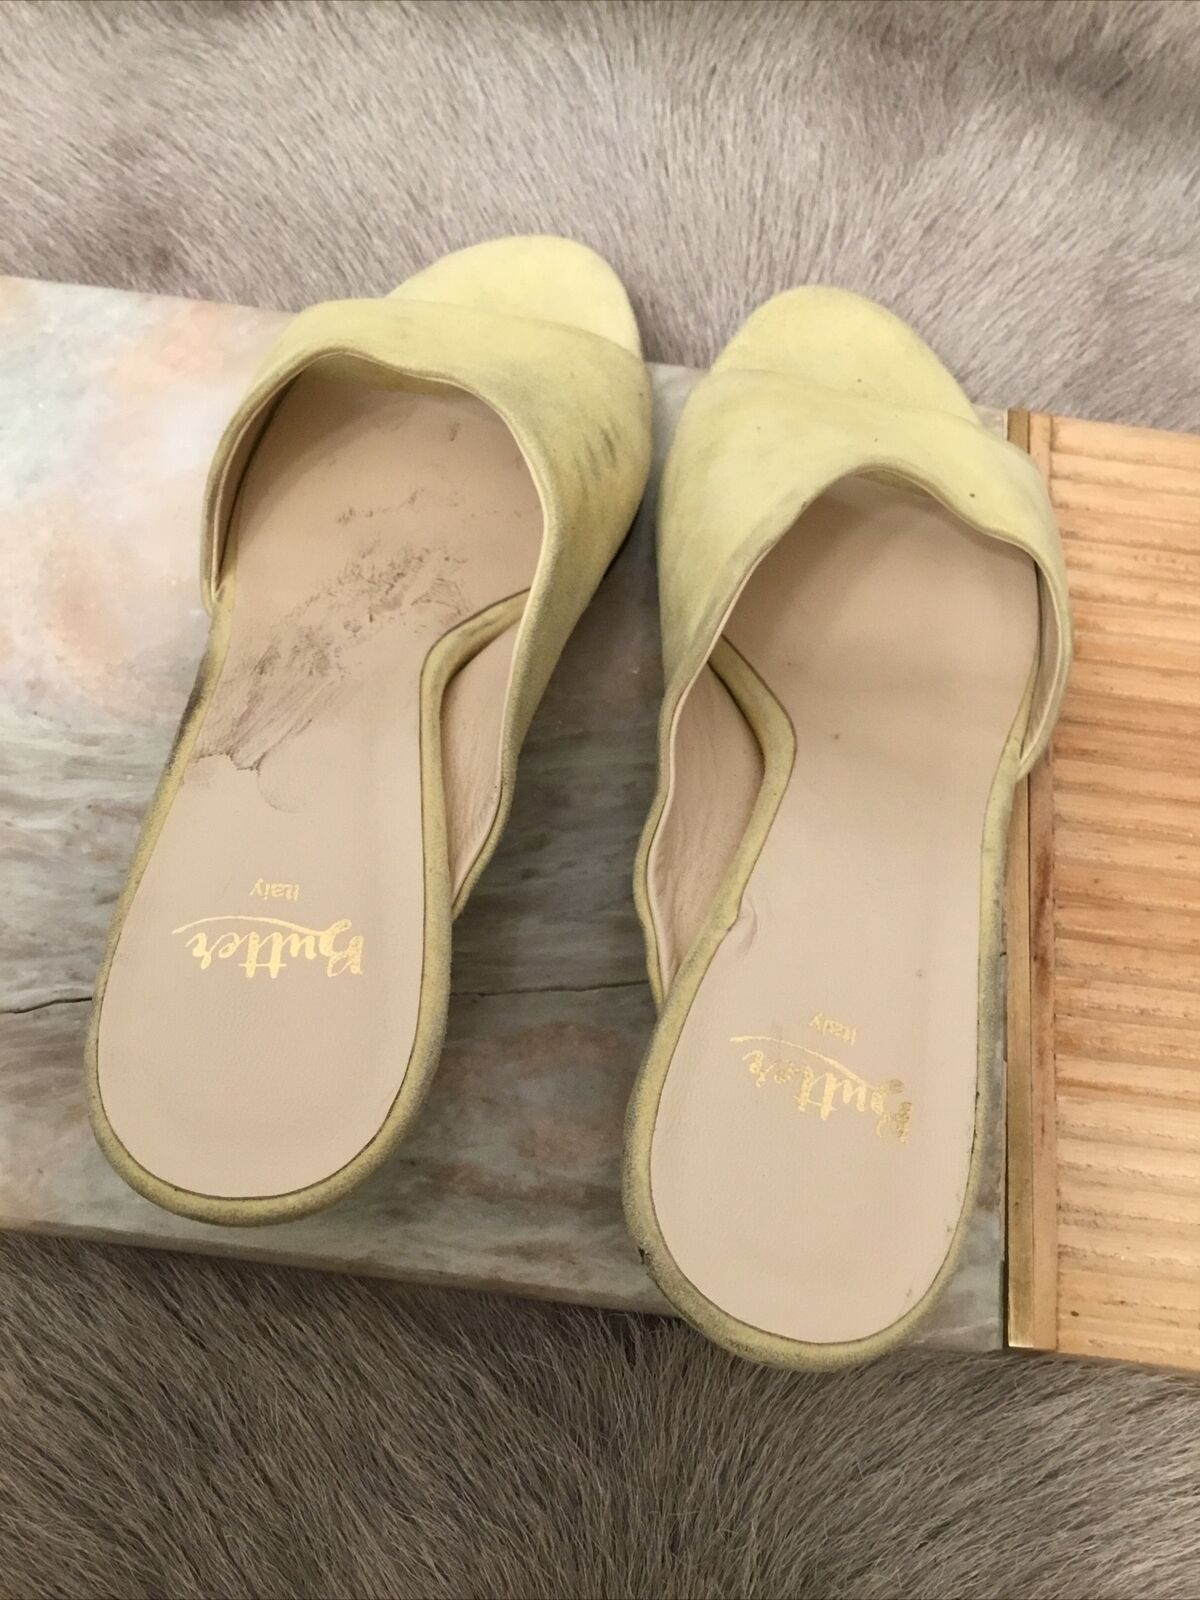 Butter Women's D'Orsay Pump Color Yellow Size 8(5) - image 7